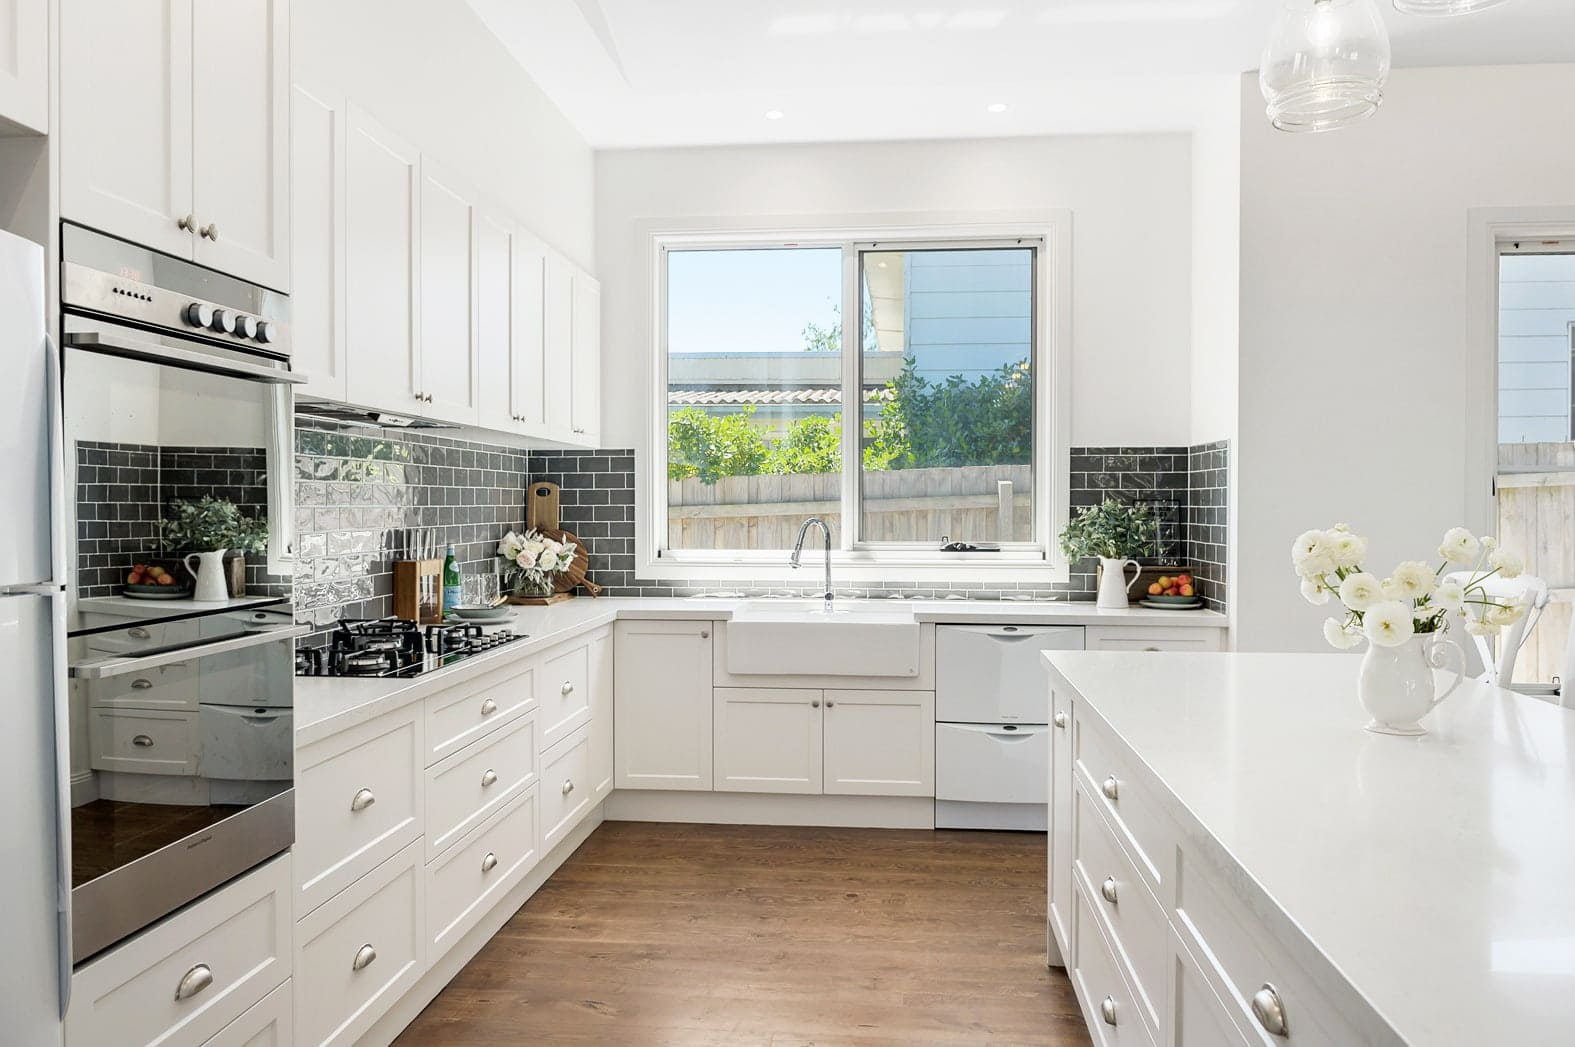 hamptons kitchen with butlers sink and white shaker cabinetry and blue splashback tiles in subway pattern